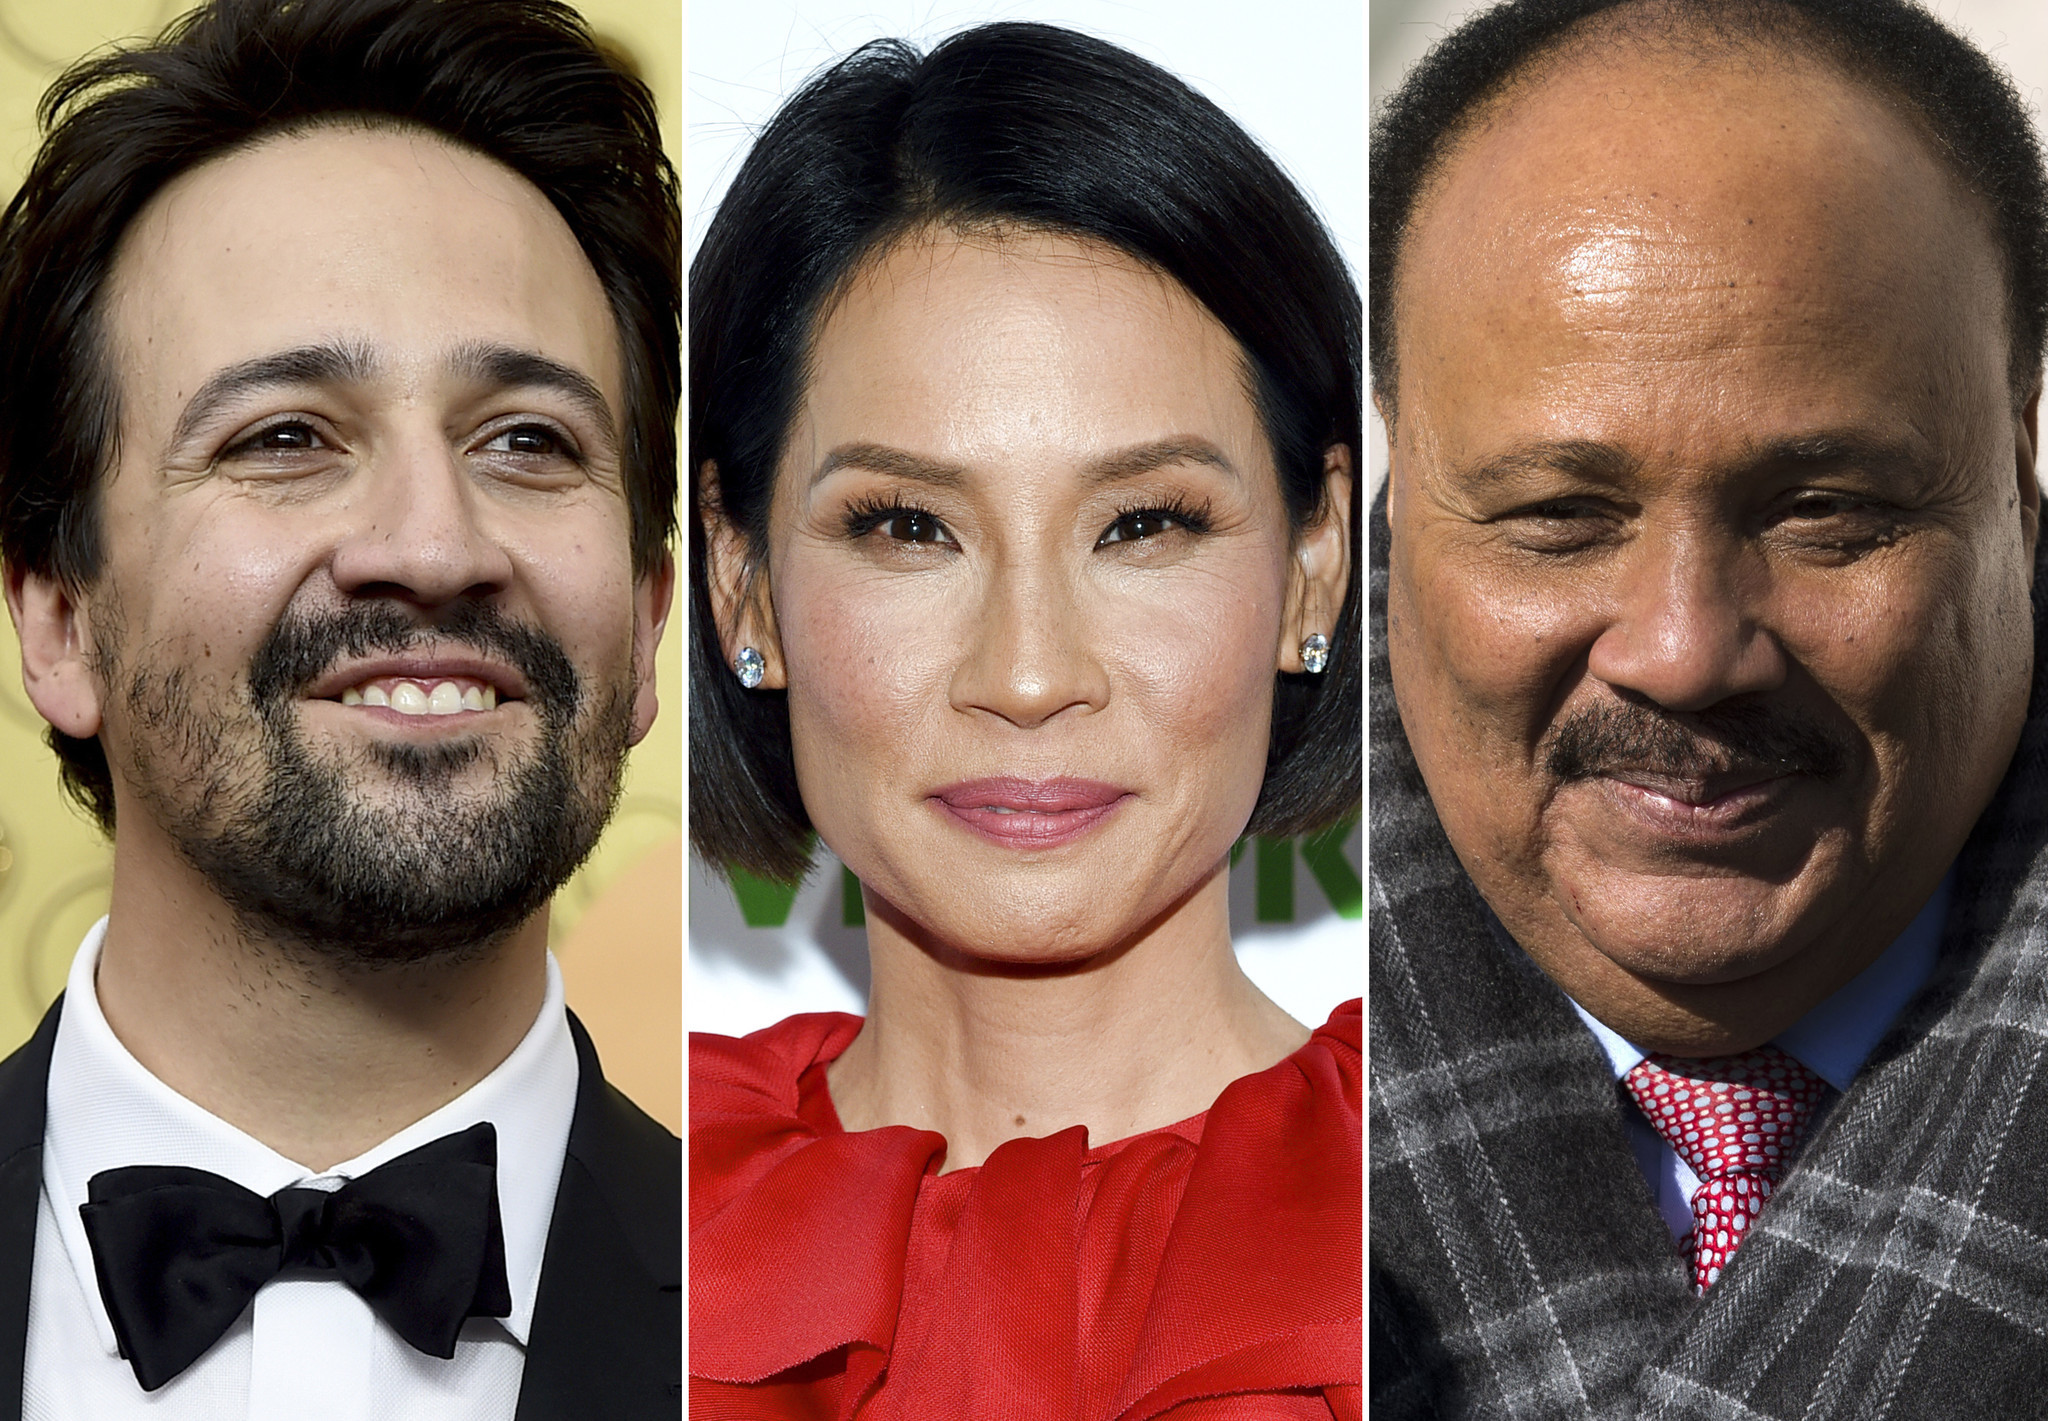 Cuomo enlists help of Martin Luther King III, Lin Manuel Miranda and Lucy Liu for Census efforts